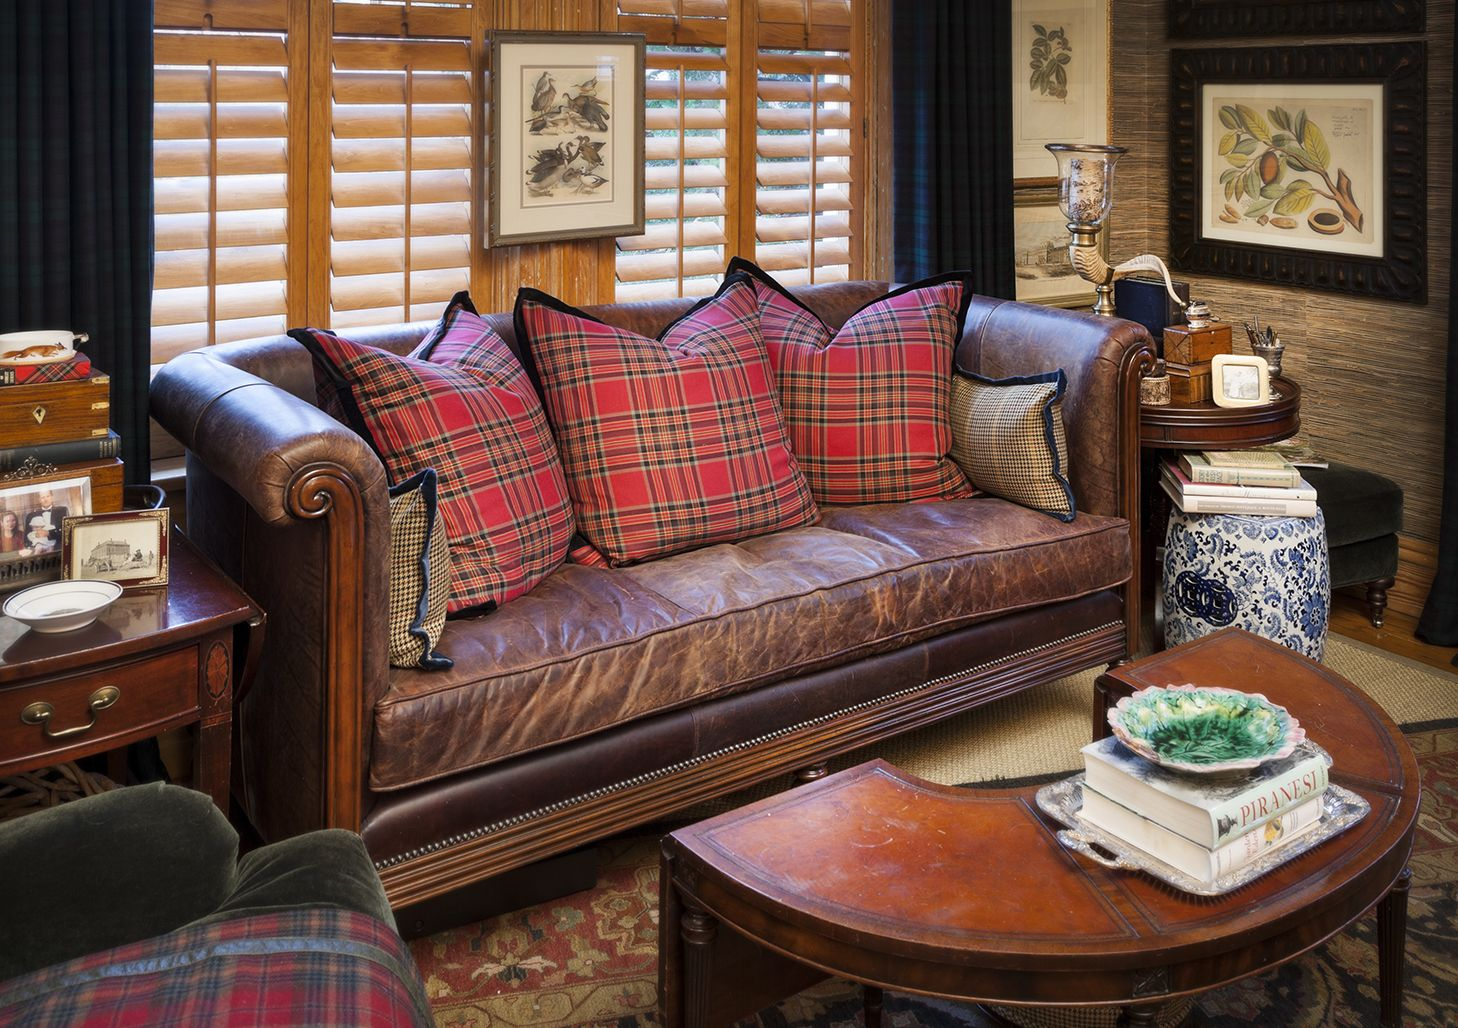 Throw Pillows For A Tan Couch : Classic brown leather sofa/settee with single seat cushion and tartan throw pillows - Nell Hill ...